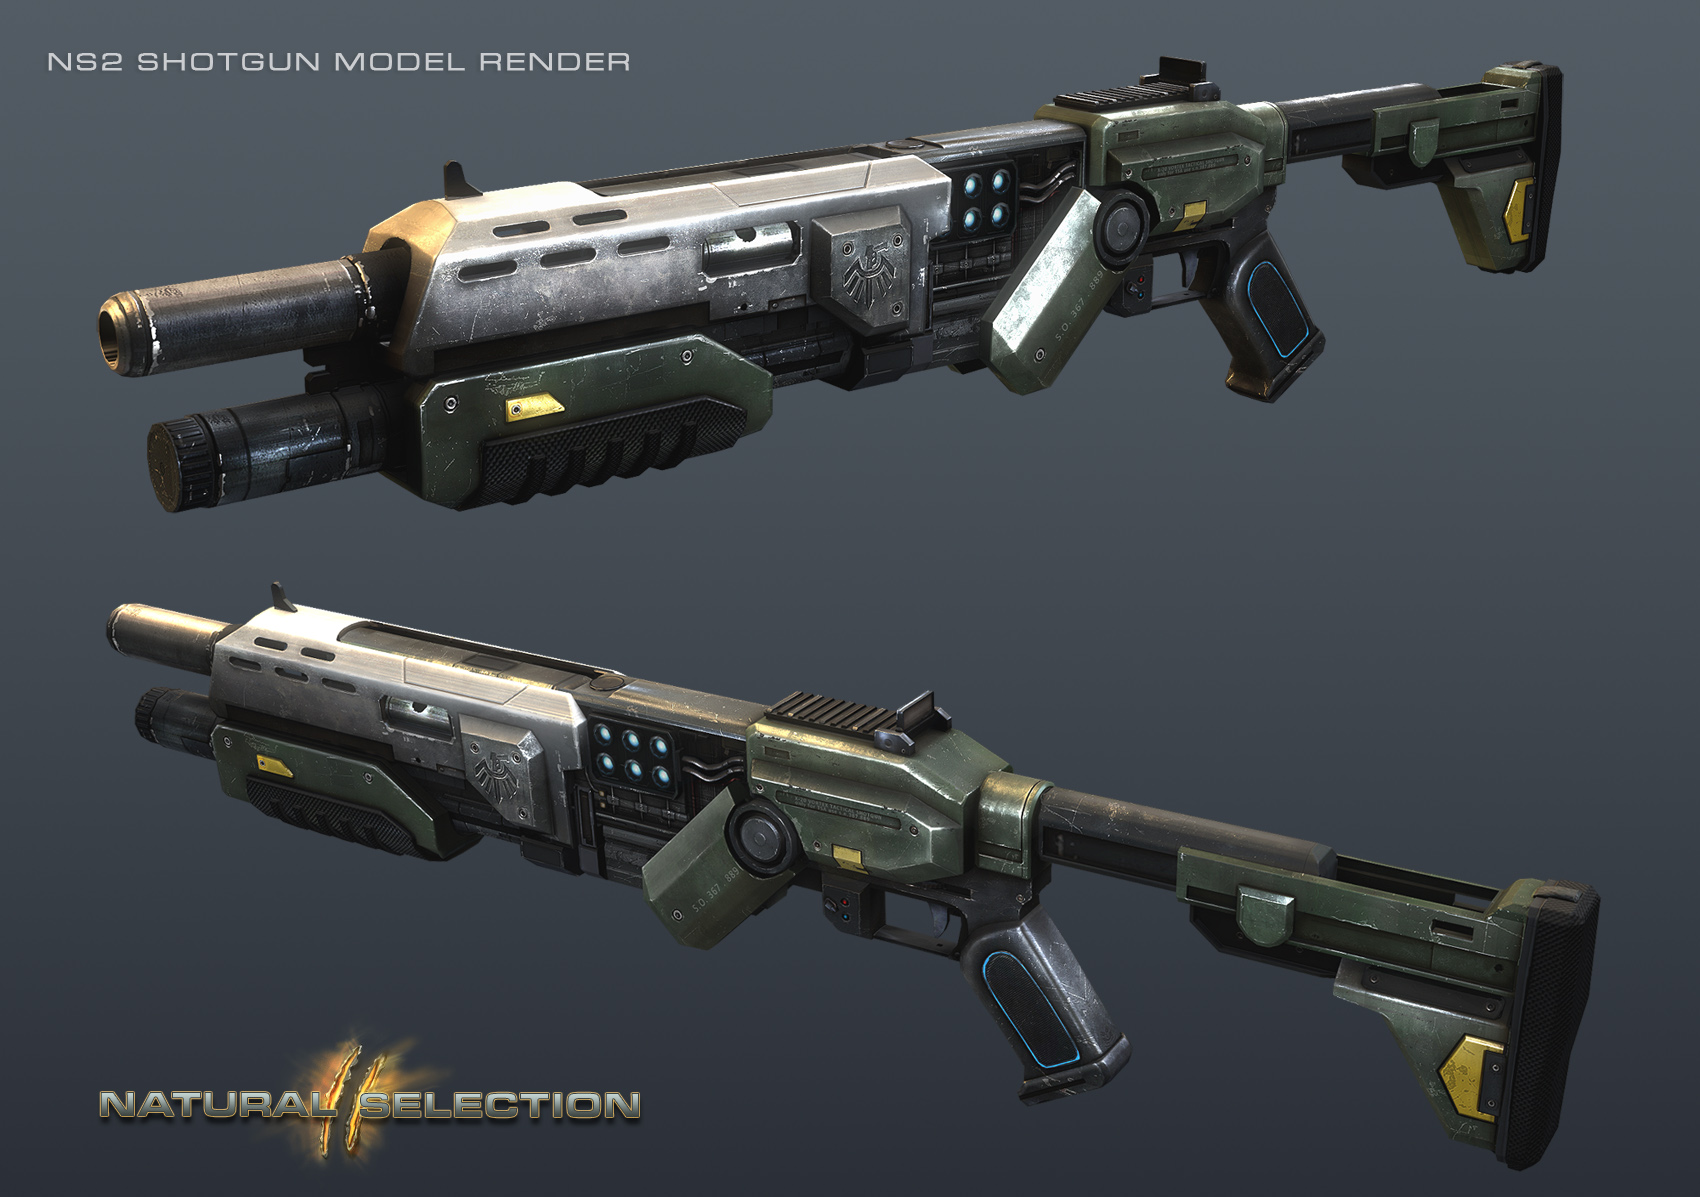 The Shotgun news - Natural Selection mod for Half-Life ...